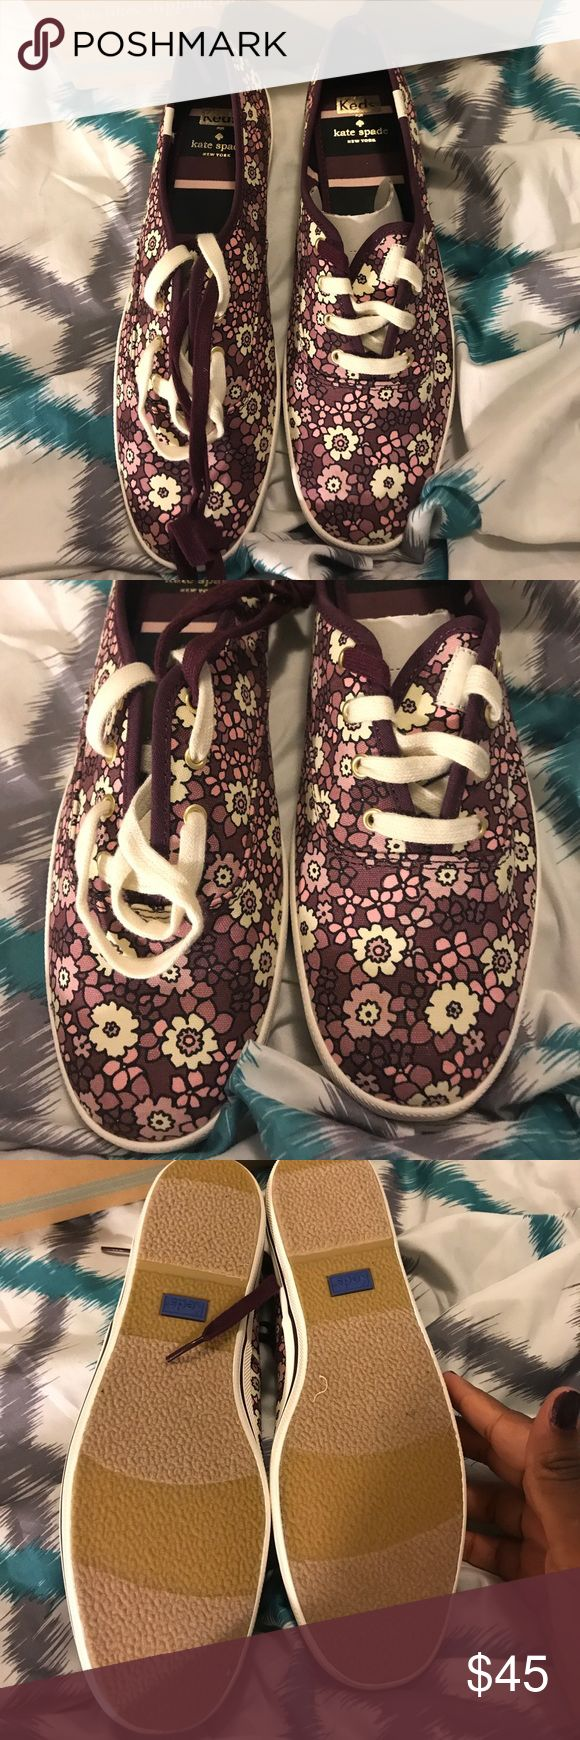 Keds for Kate Spade Floral  Shoes Keds for Kate Spade shoes. Wine floral color Keds Shoes Sneakers